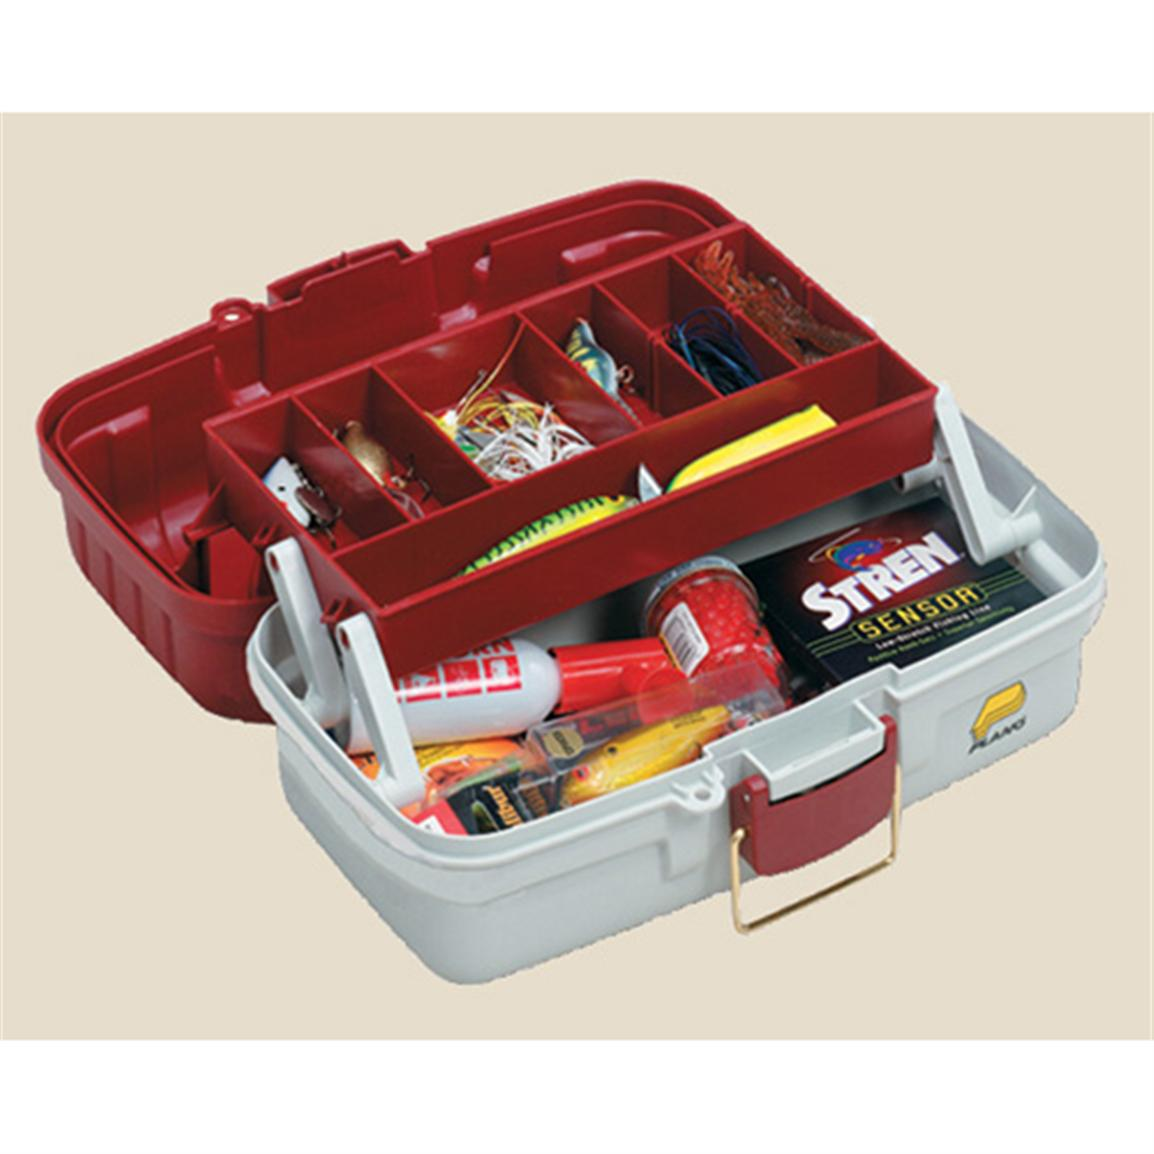 Plano 1-Tray Tackle Box, Red / White